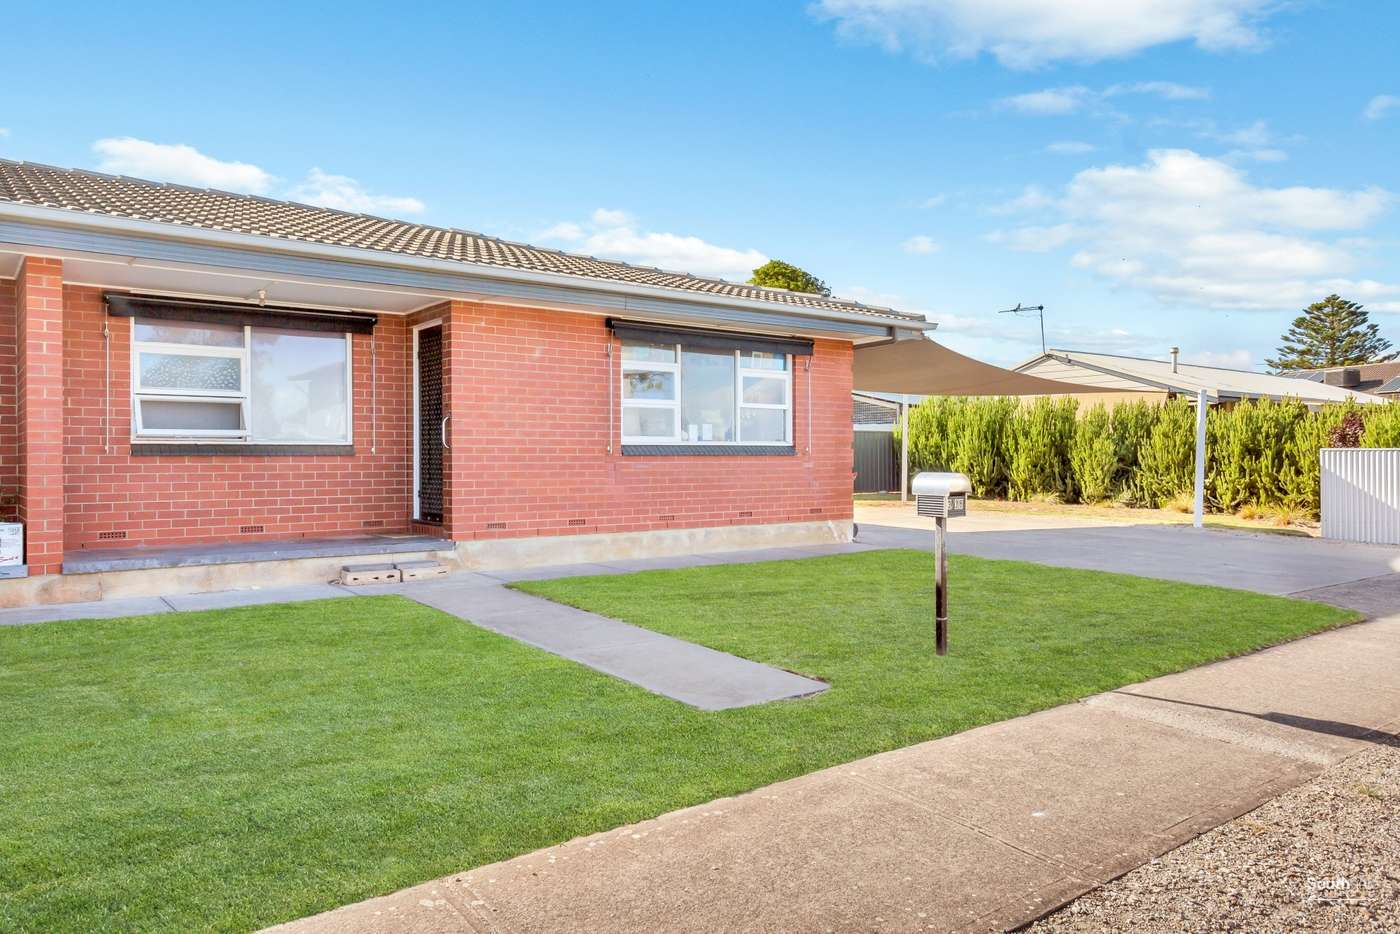 Sixth view of Homely house listing, 3/38 Ferris Street, Christies Beach SA 5165